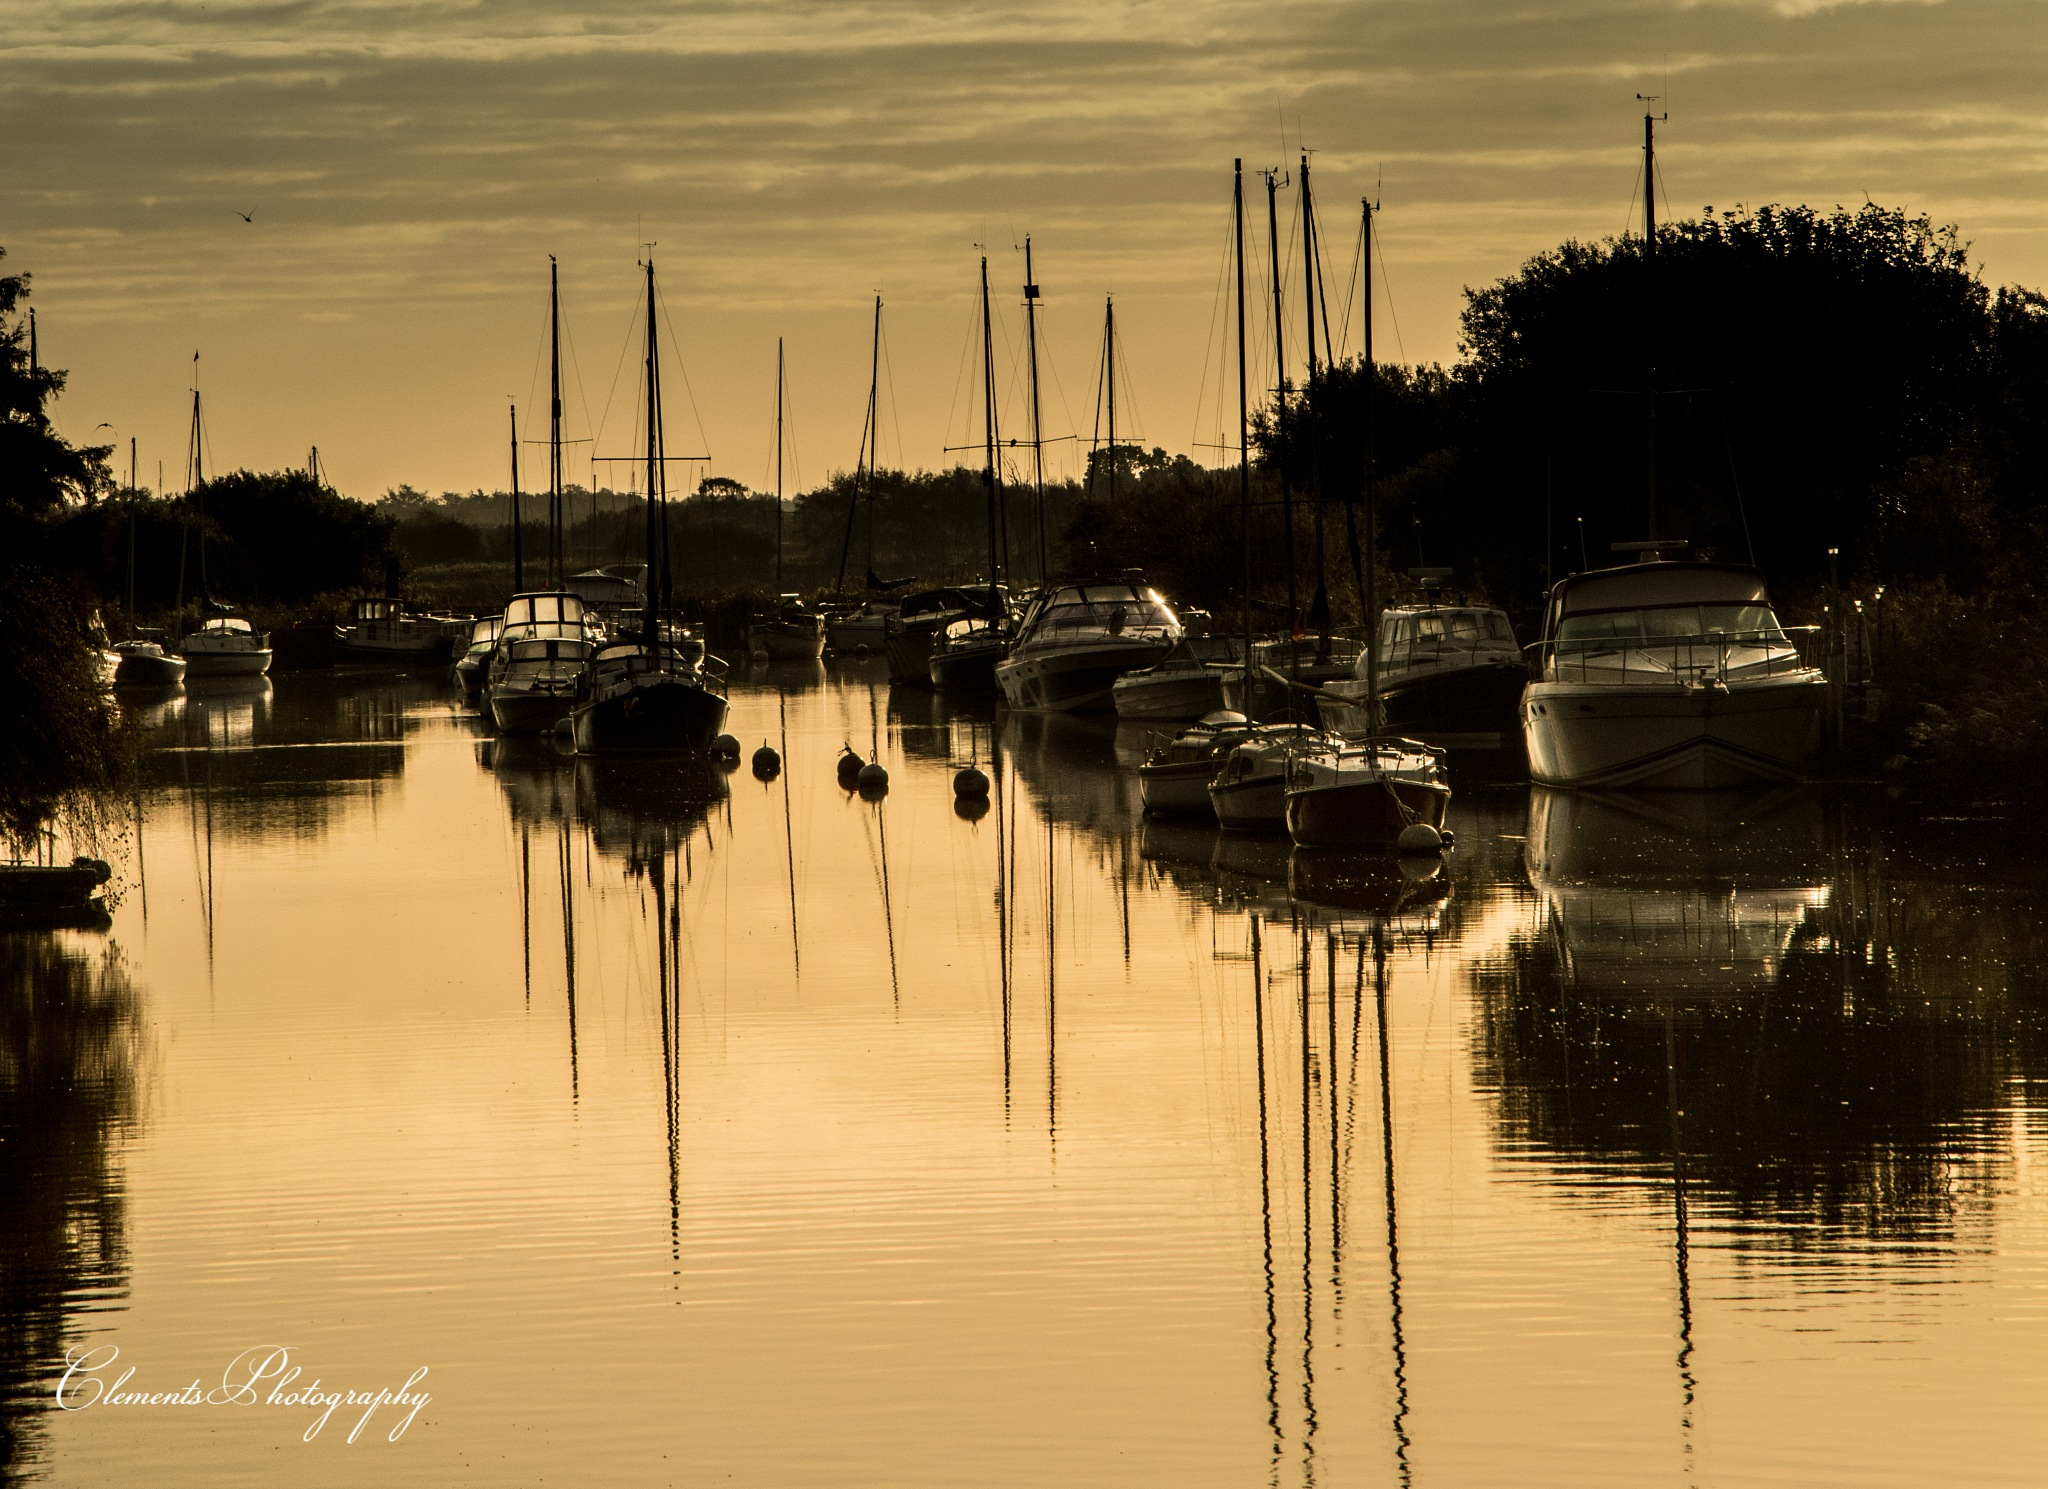 Copper reflections by Clement